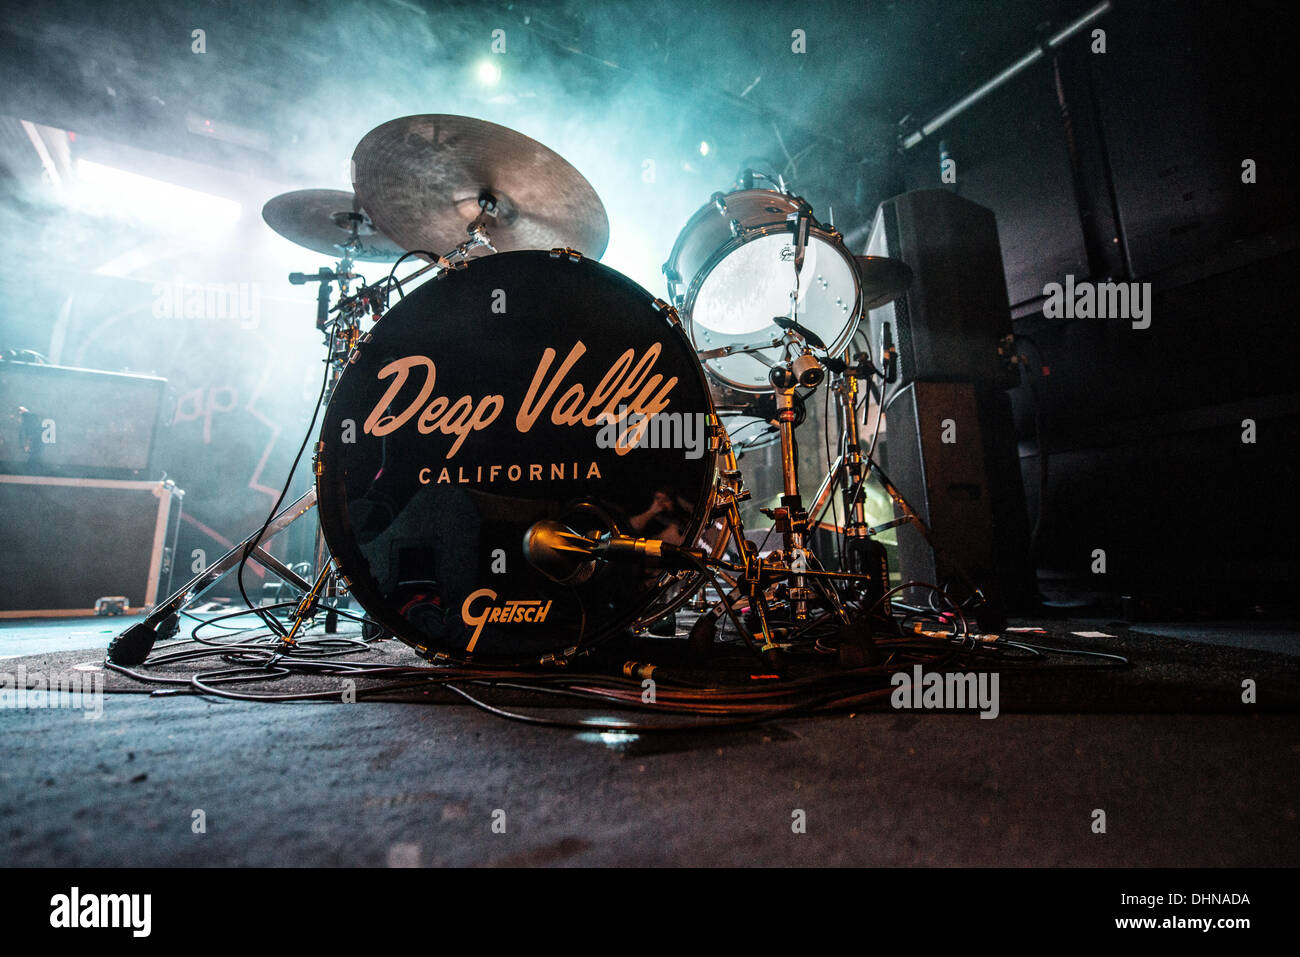 Glasgow, Scotland, UK. 12th November 2013. Deap Vally performs at Oran Mor in Glasgow, Scotland, UNITED KINGDOM - NOVEMBER 12: 2013 © Sam Kovak/Alamy Live News - Stock Image